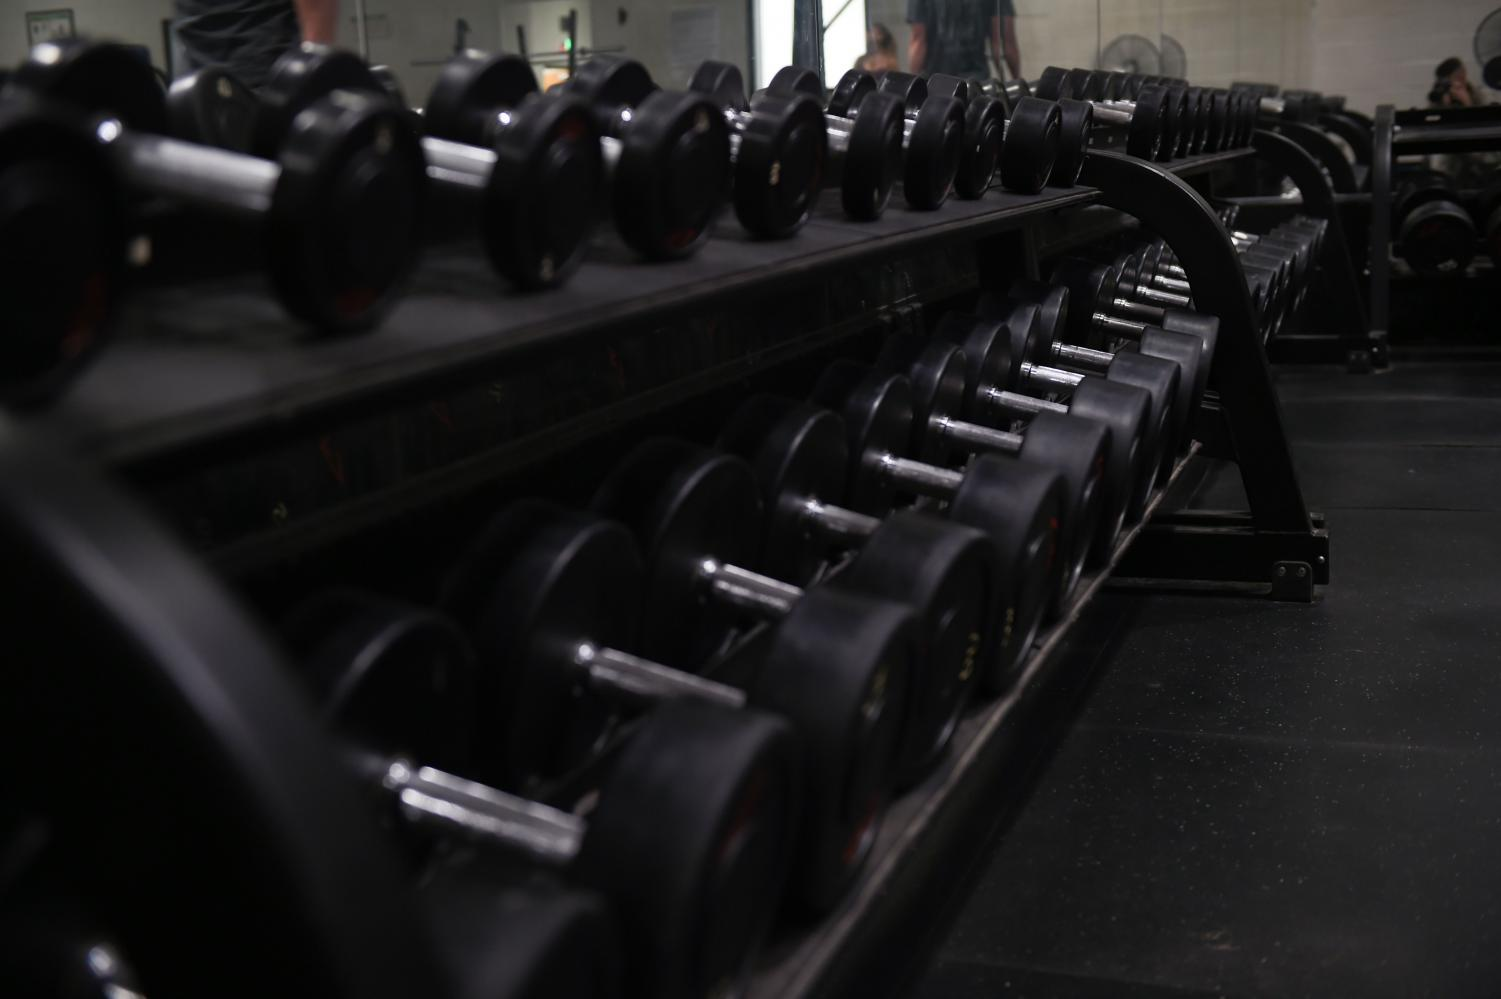 Dumbbell free-weights,  seen here for use at the Dyess Fitness Center at Dyess Air Force Base in Texas, can be found at any gym.